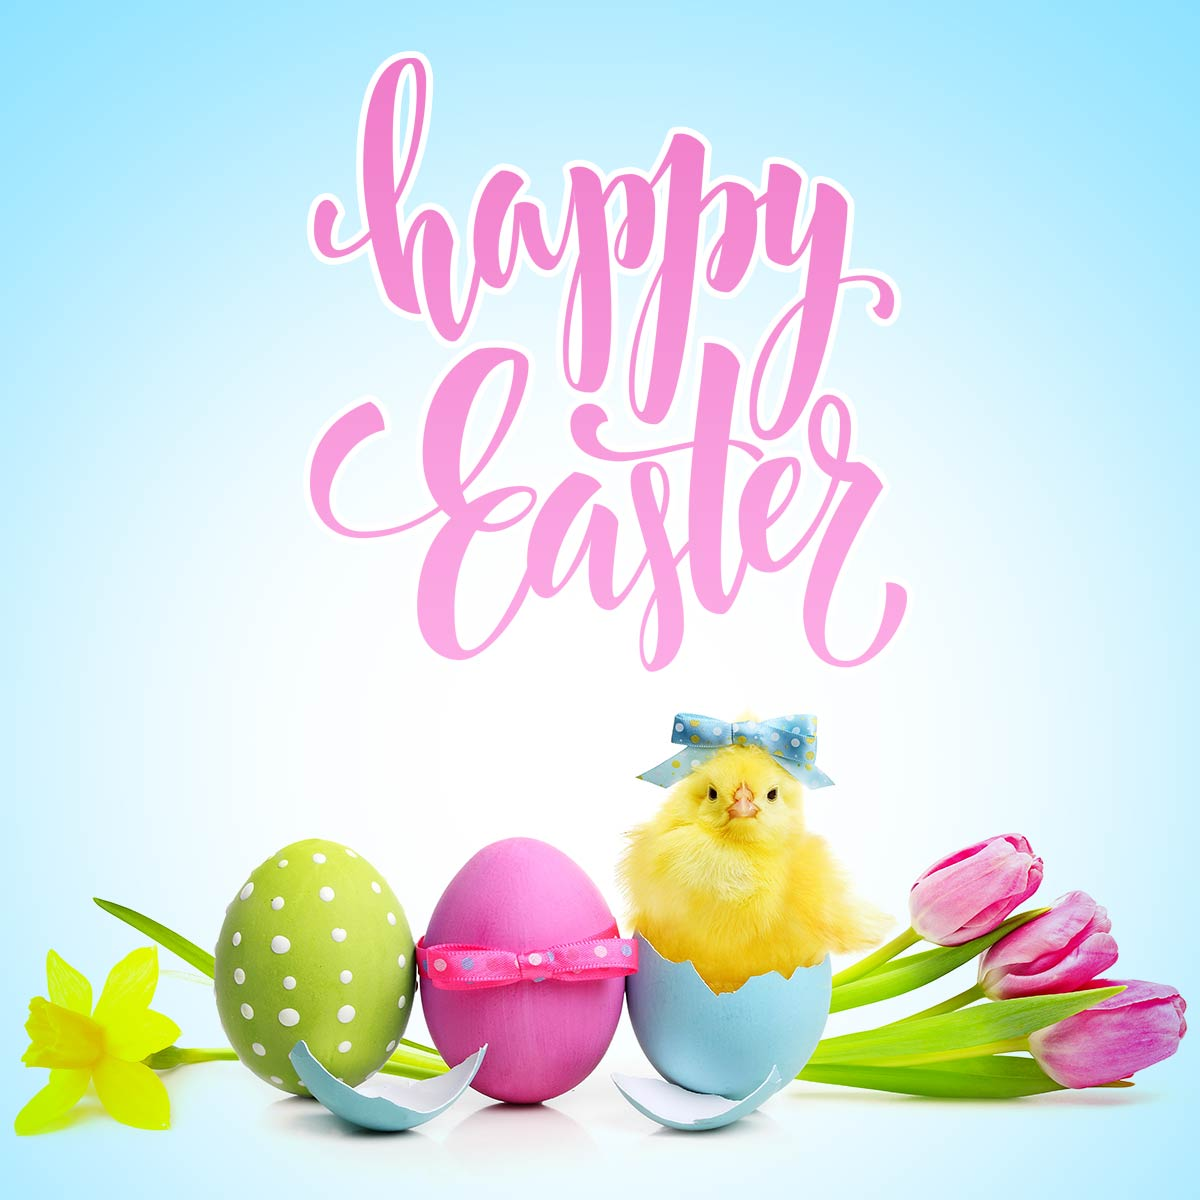 Pastel Color Easter Card with Cute Chick, Eggs and Tulips